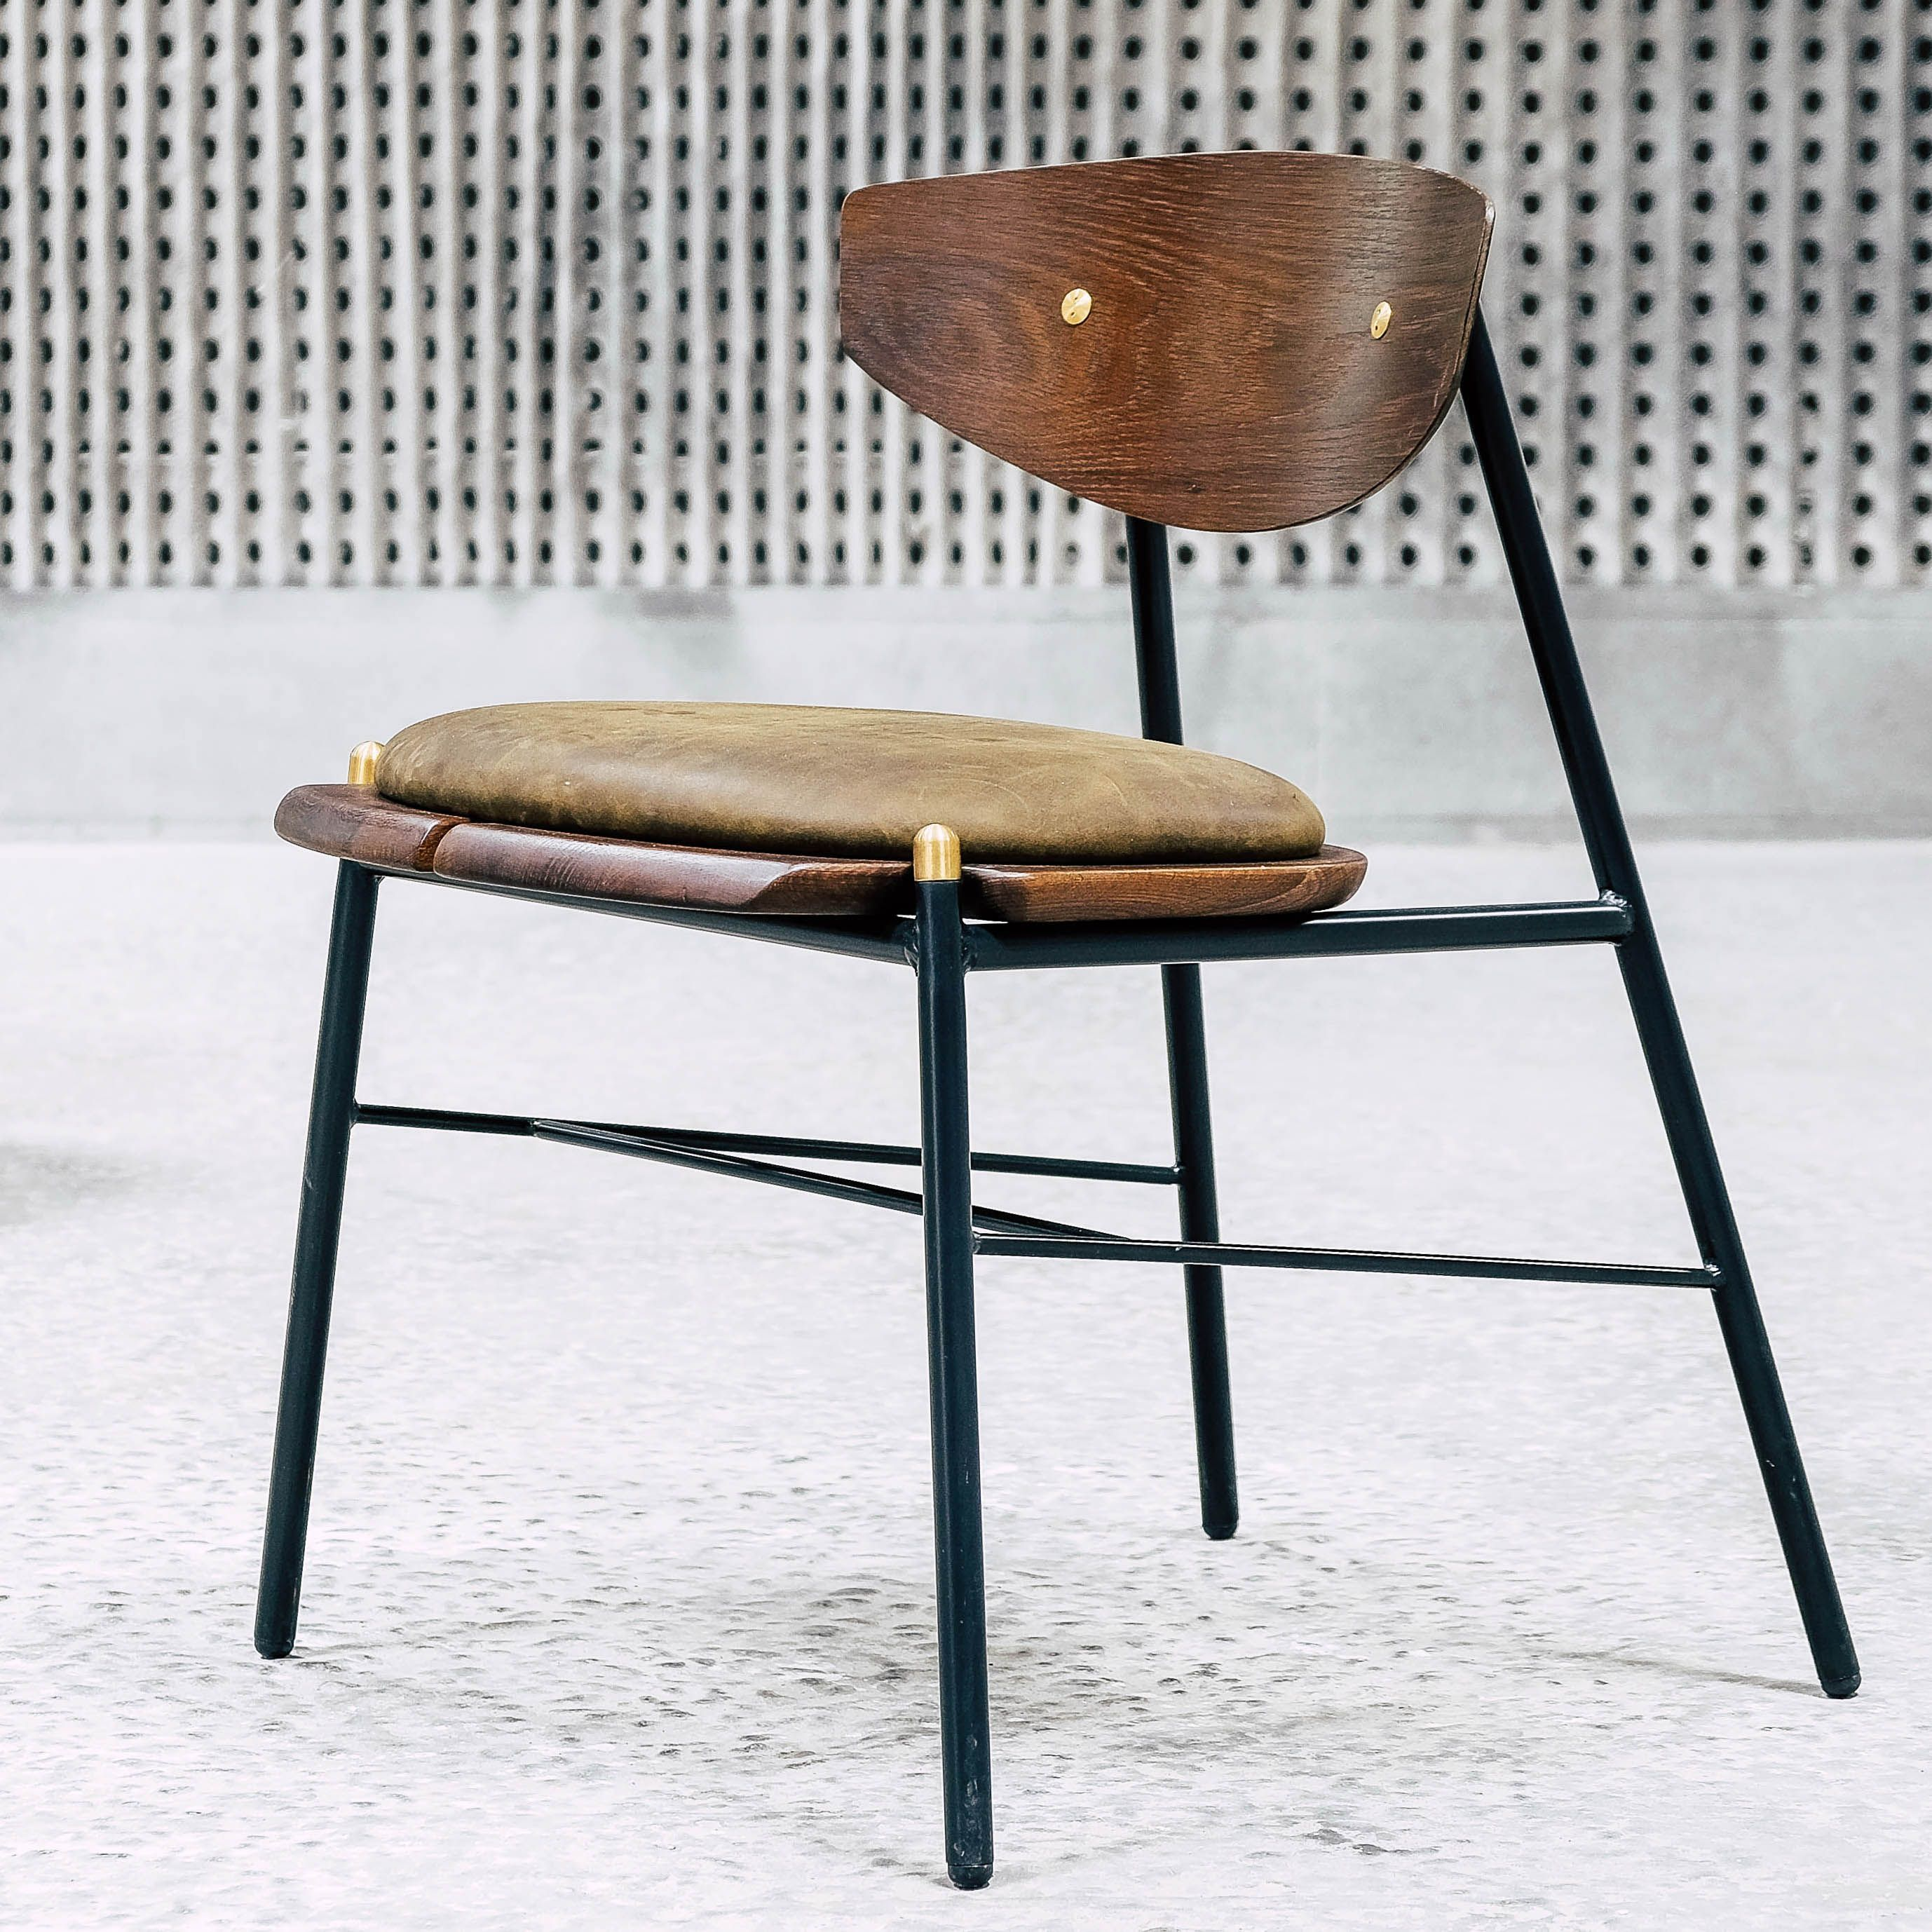 DistrictEight | The Kink Dining Chair, handcrafted with a blackened ...